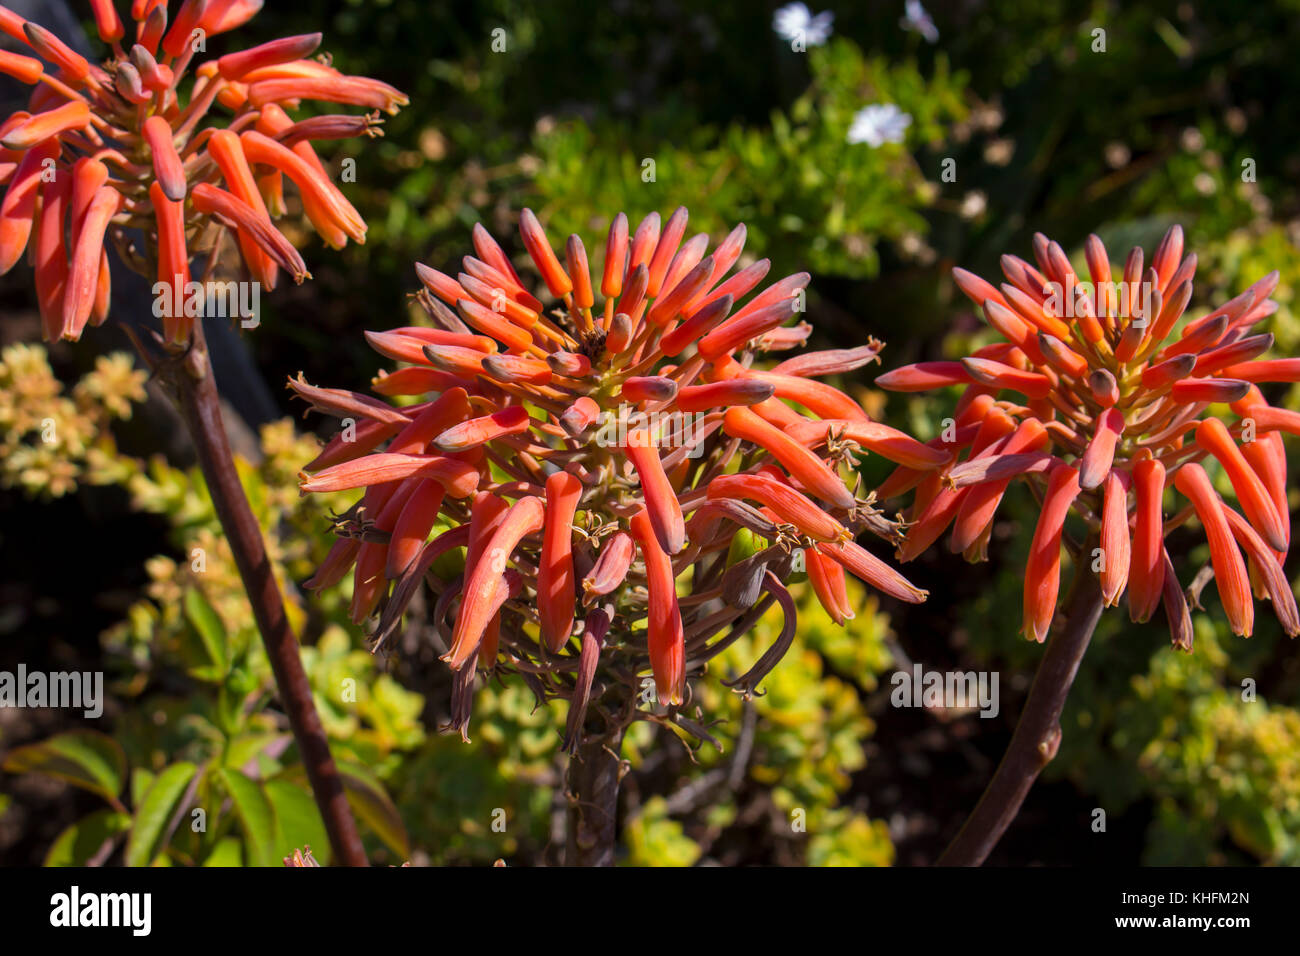 Tall Flower Spikes Stock Photos Tall Flower Spikes Stock Images